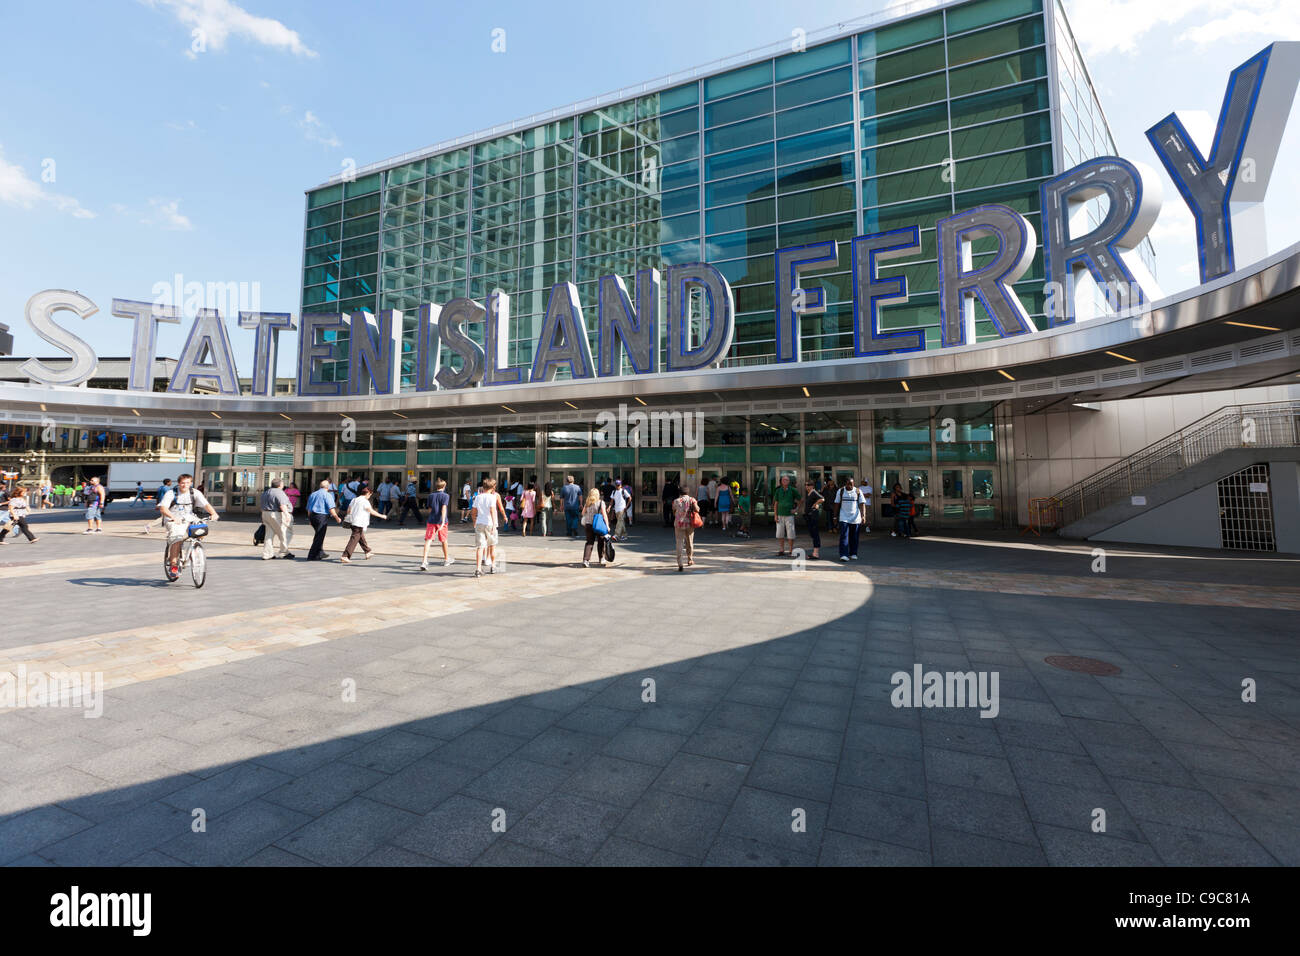 The entrance to the Staten Island Ferry Terminal in New York City. - Stock Image